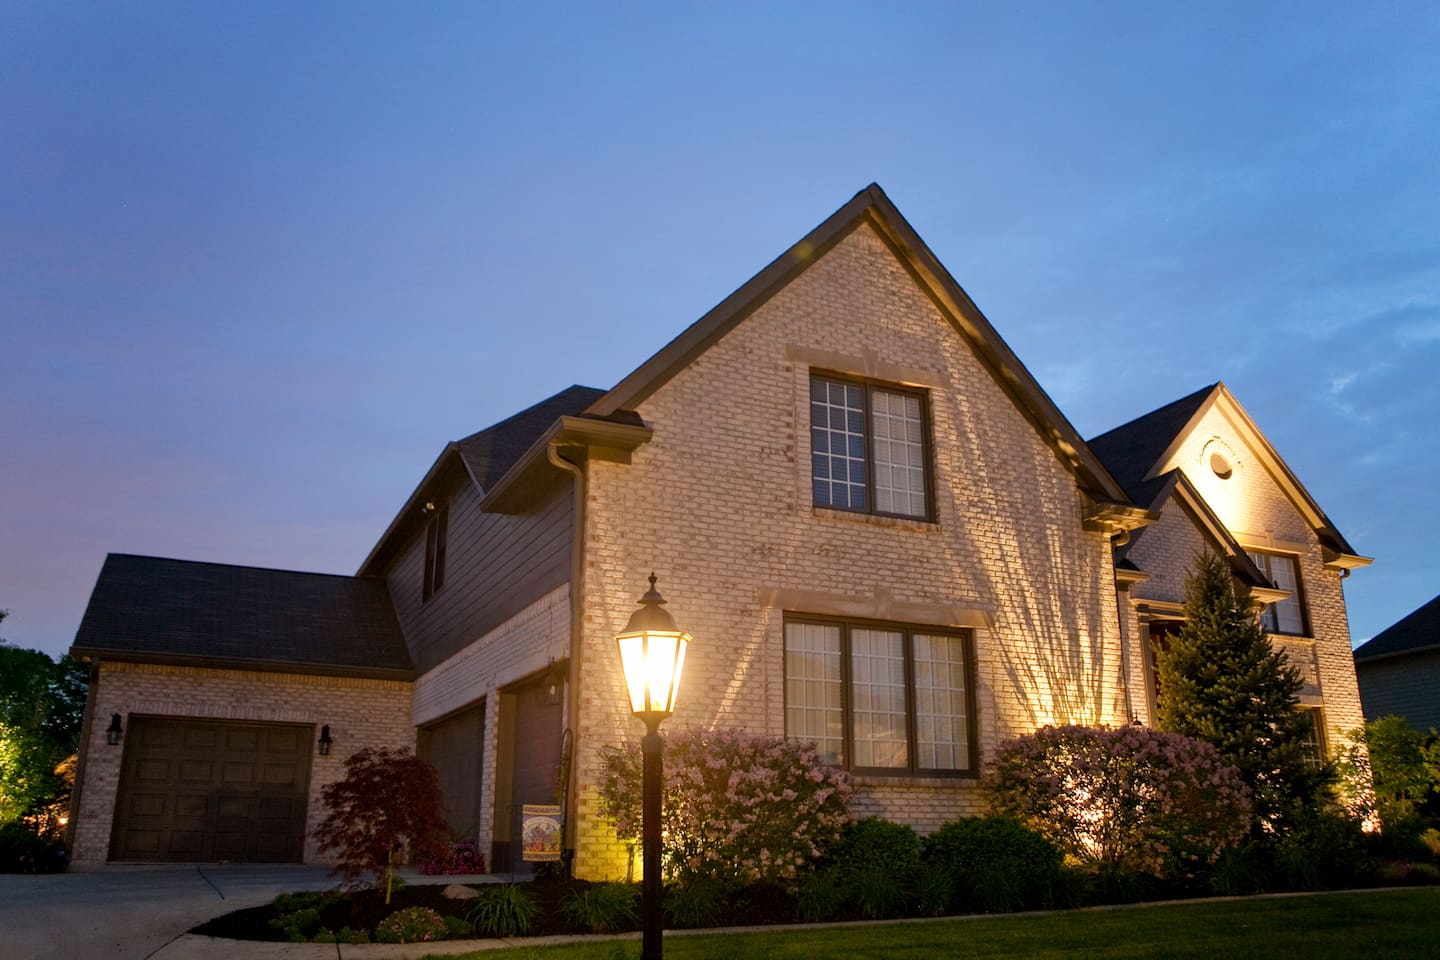 Outdoor Lighting Outdoor Lighting Options And Security Upgrades Angies List